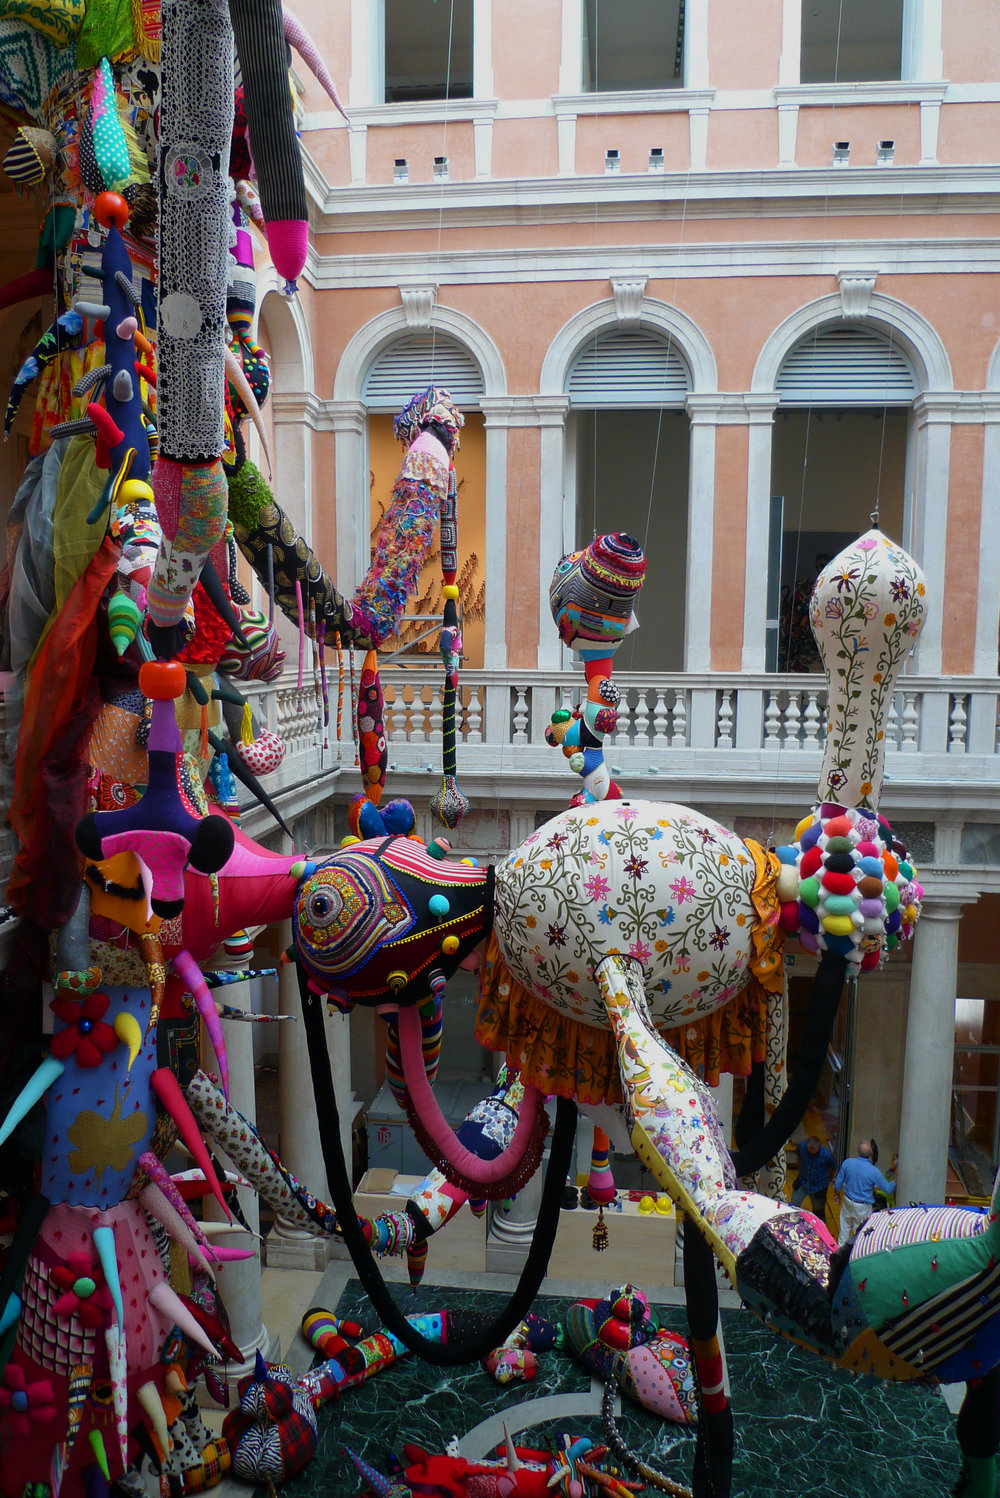 Contamination (2008-2010): Joana Vasconcelos at Palazzo Grassi in Venice, (François Pinault Foundation) where she created a mesh of sewn tentacles that spread throughout the palazzo's various levels.